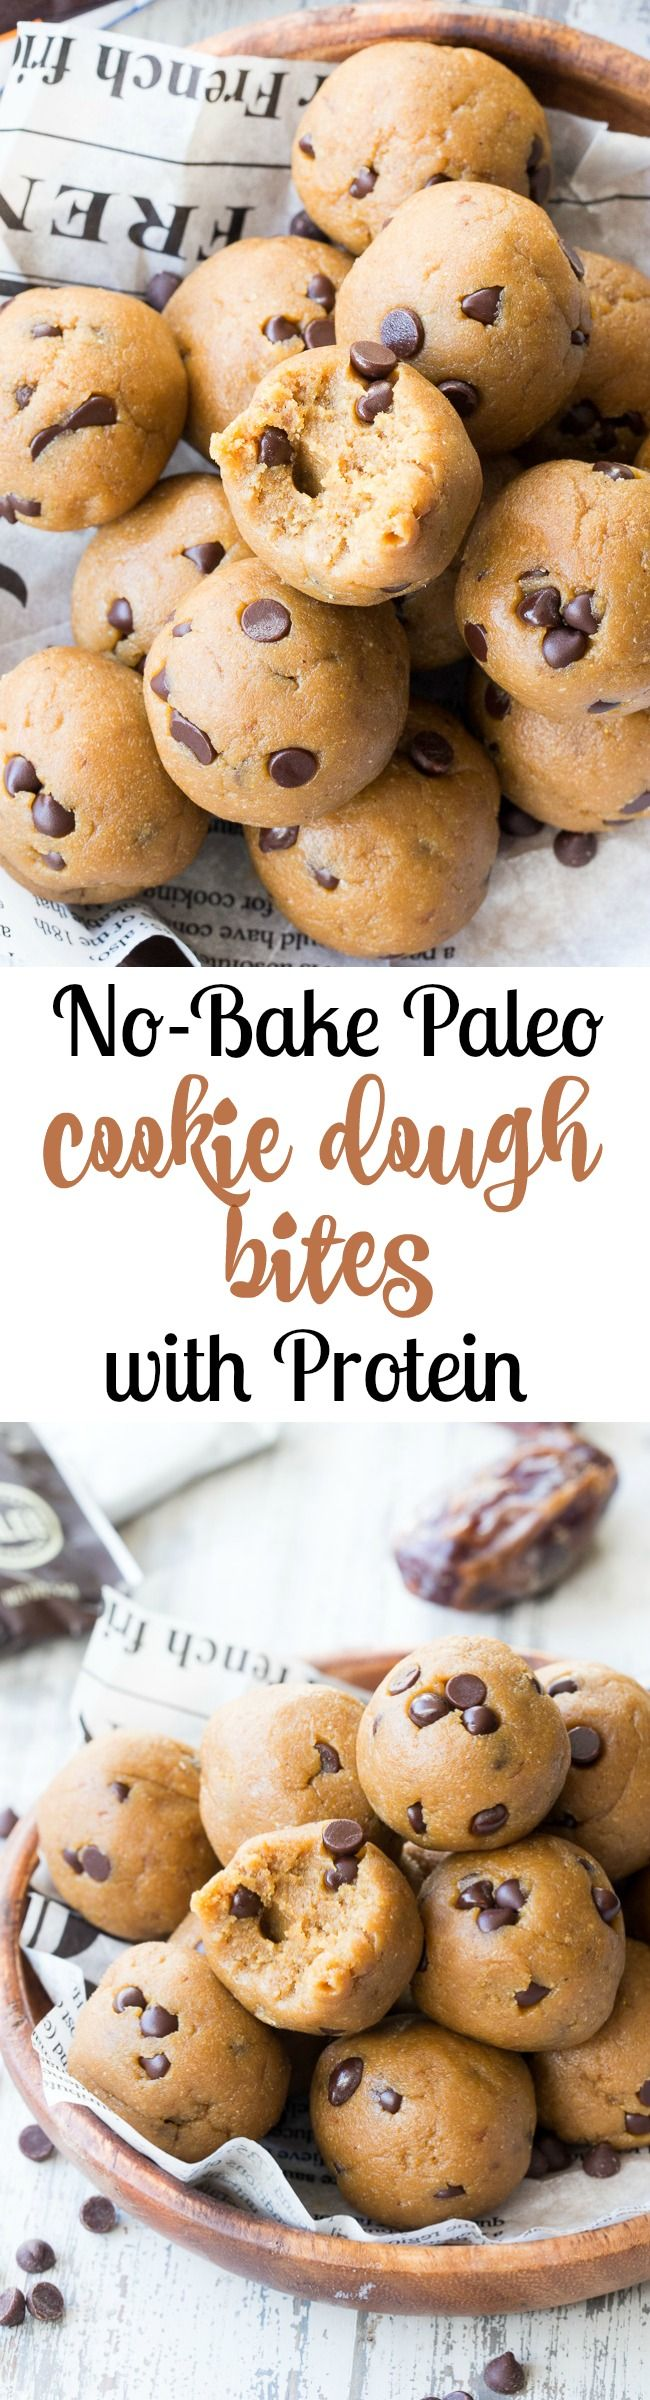 These tasty no-bake Paleo cookie dough bites are made with real-food ingredients, sweetened with dates and bananas and pack a punch of Paleo friendly protein along with the taste and texture of chocolate chip cookie dough!